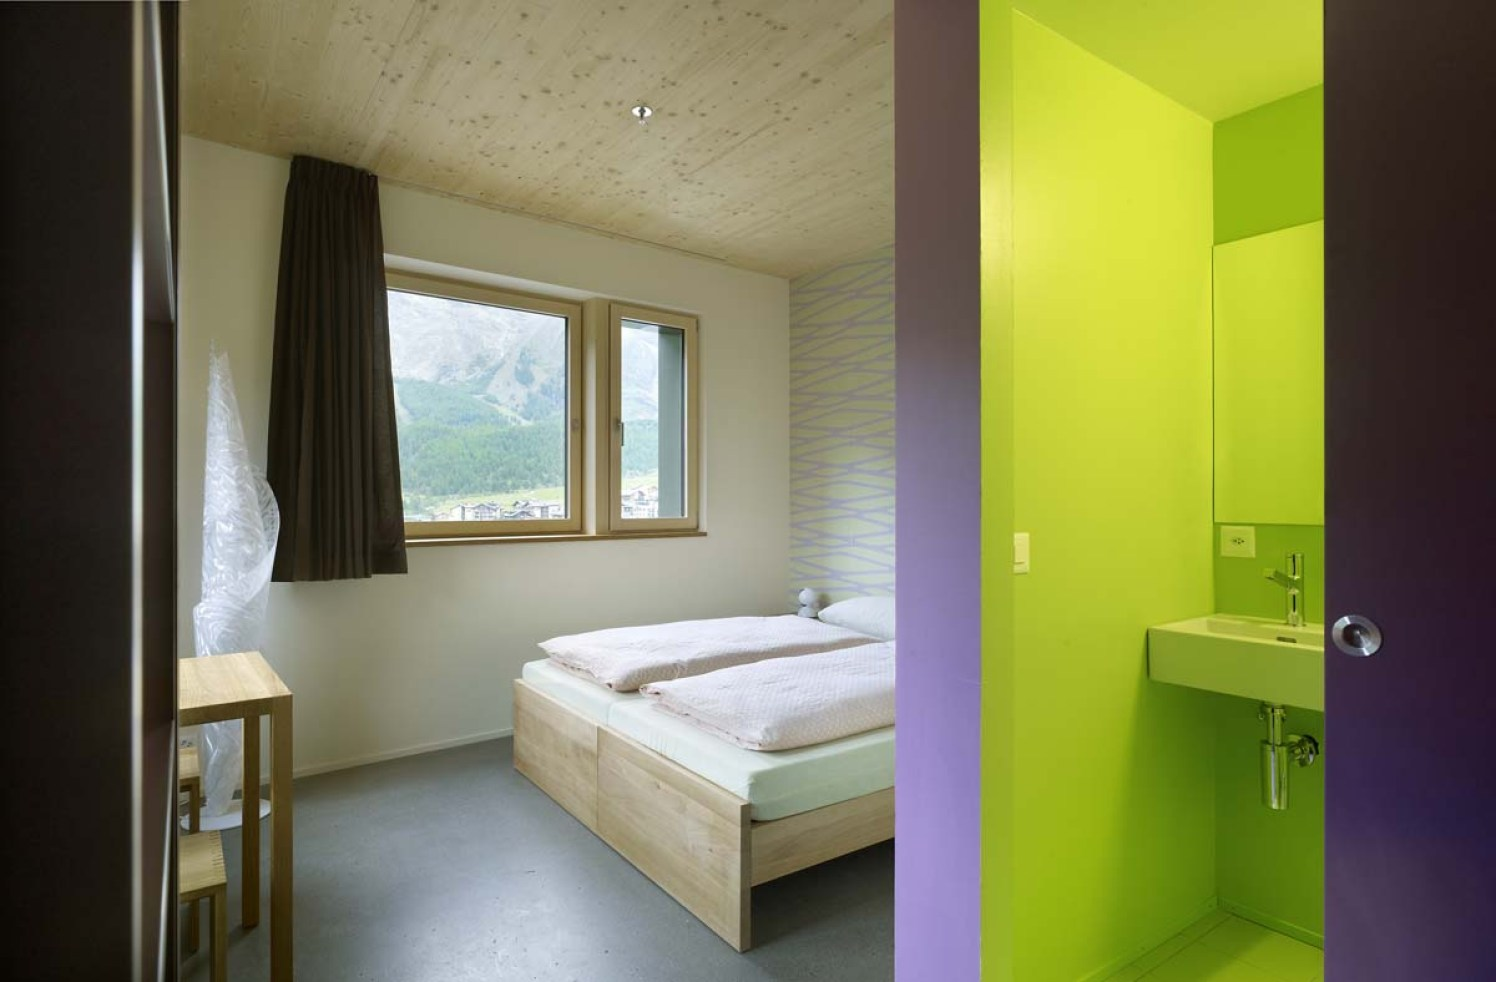 Jugendherberge Saas-Fee wellnessHostel4000